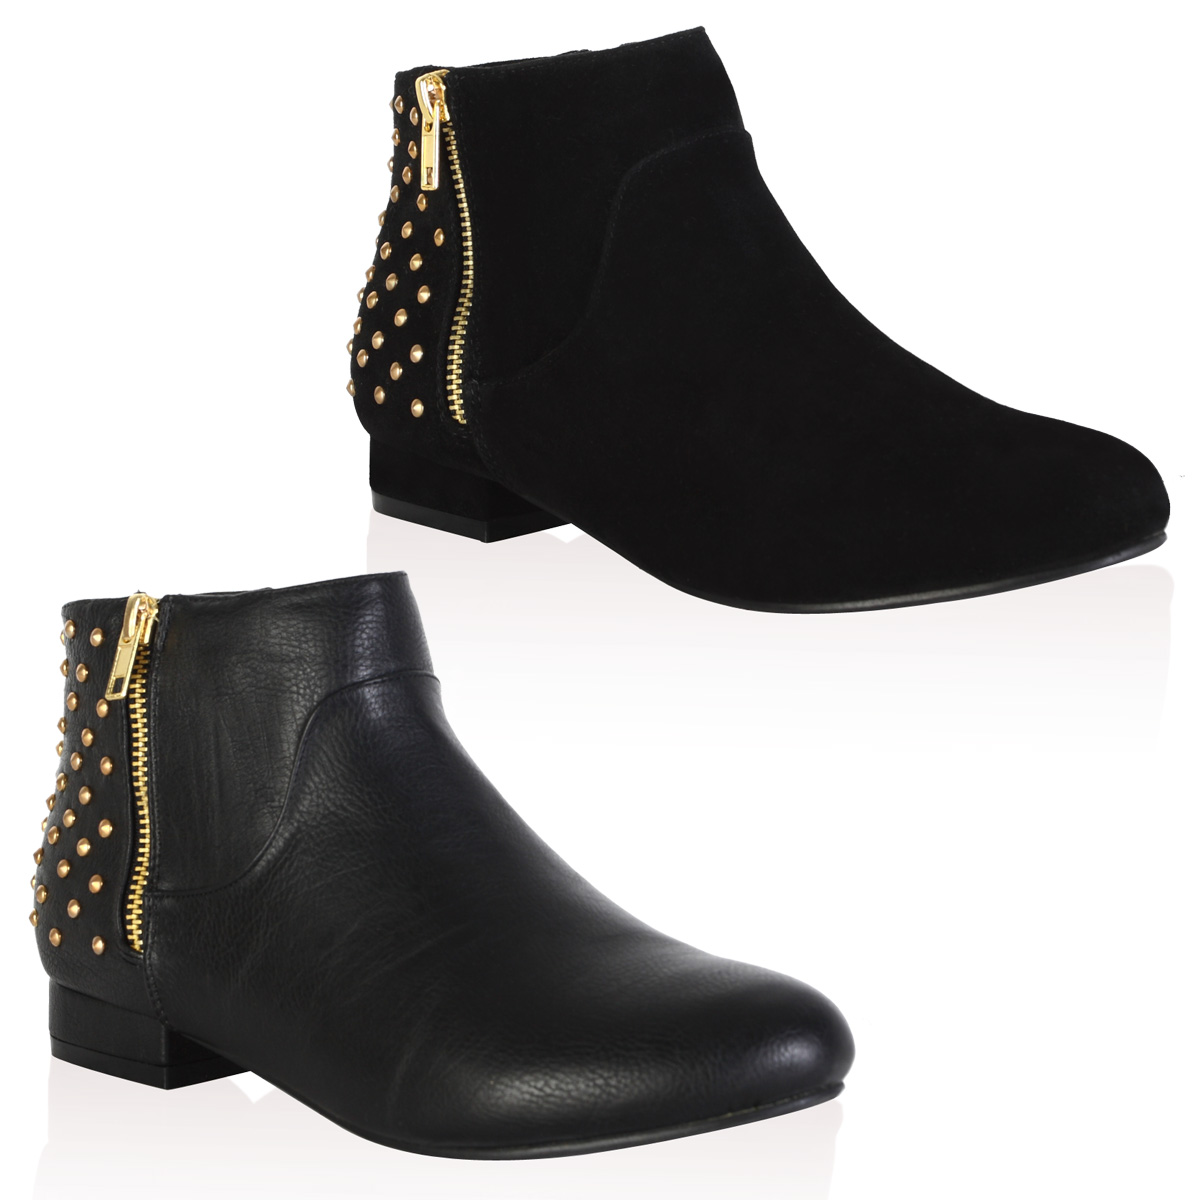 new studded zip up womens flat pixie chelsea ankle